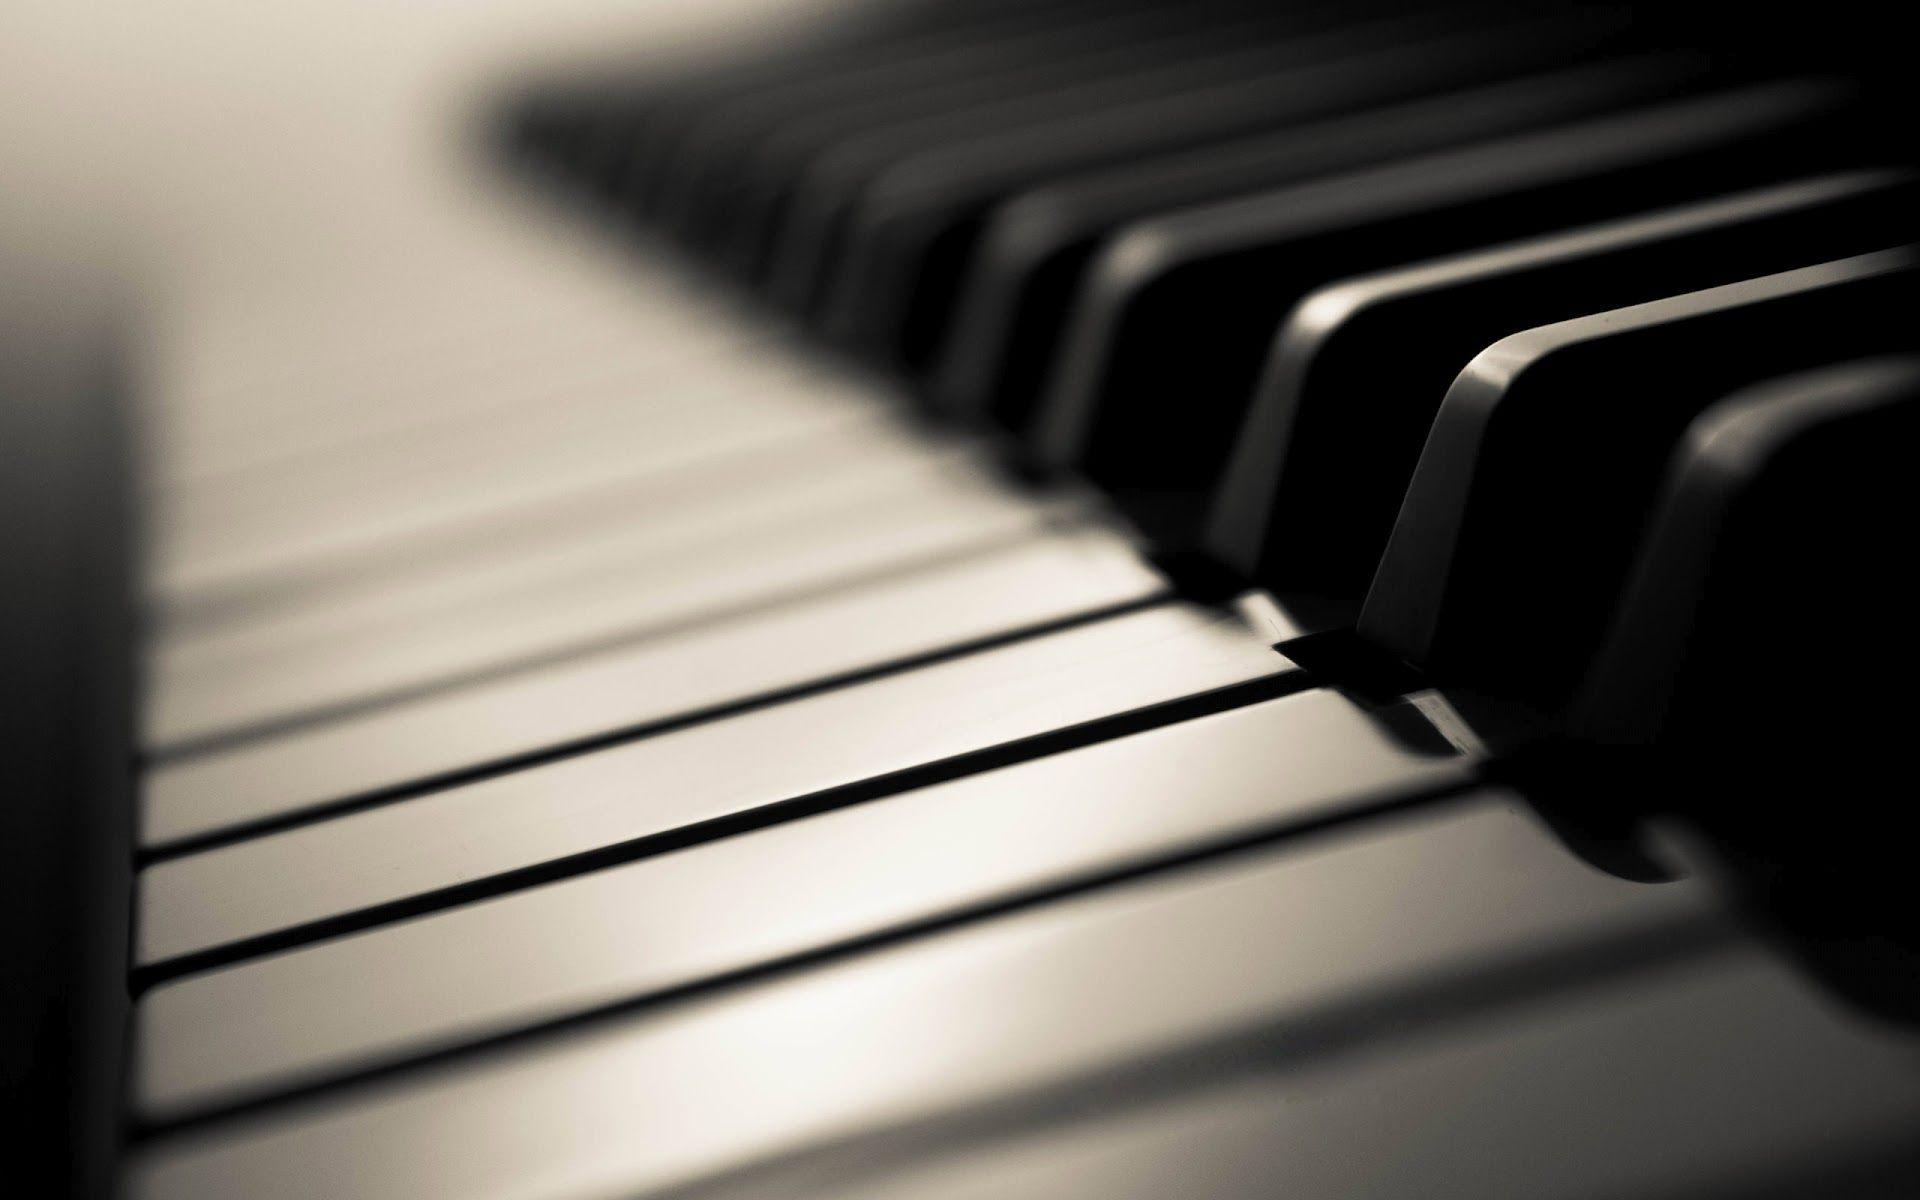 Piano Wallpaper - Hobbies & Leisure